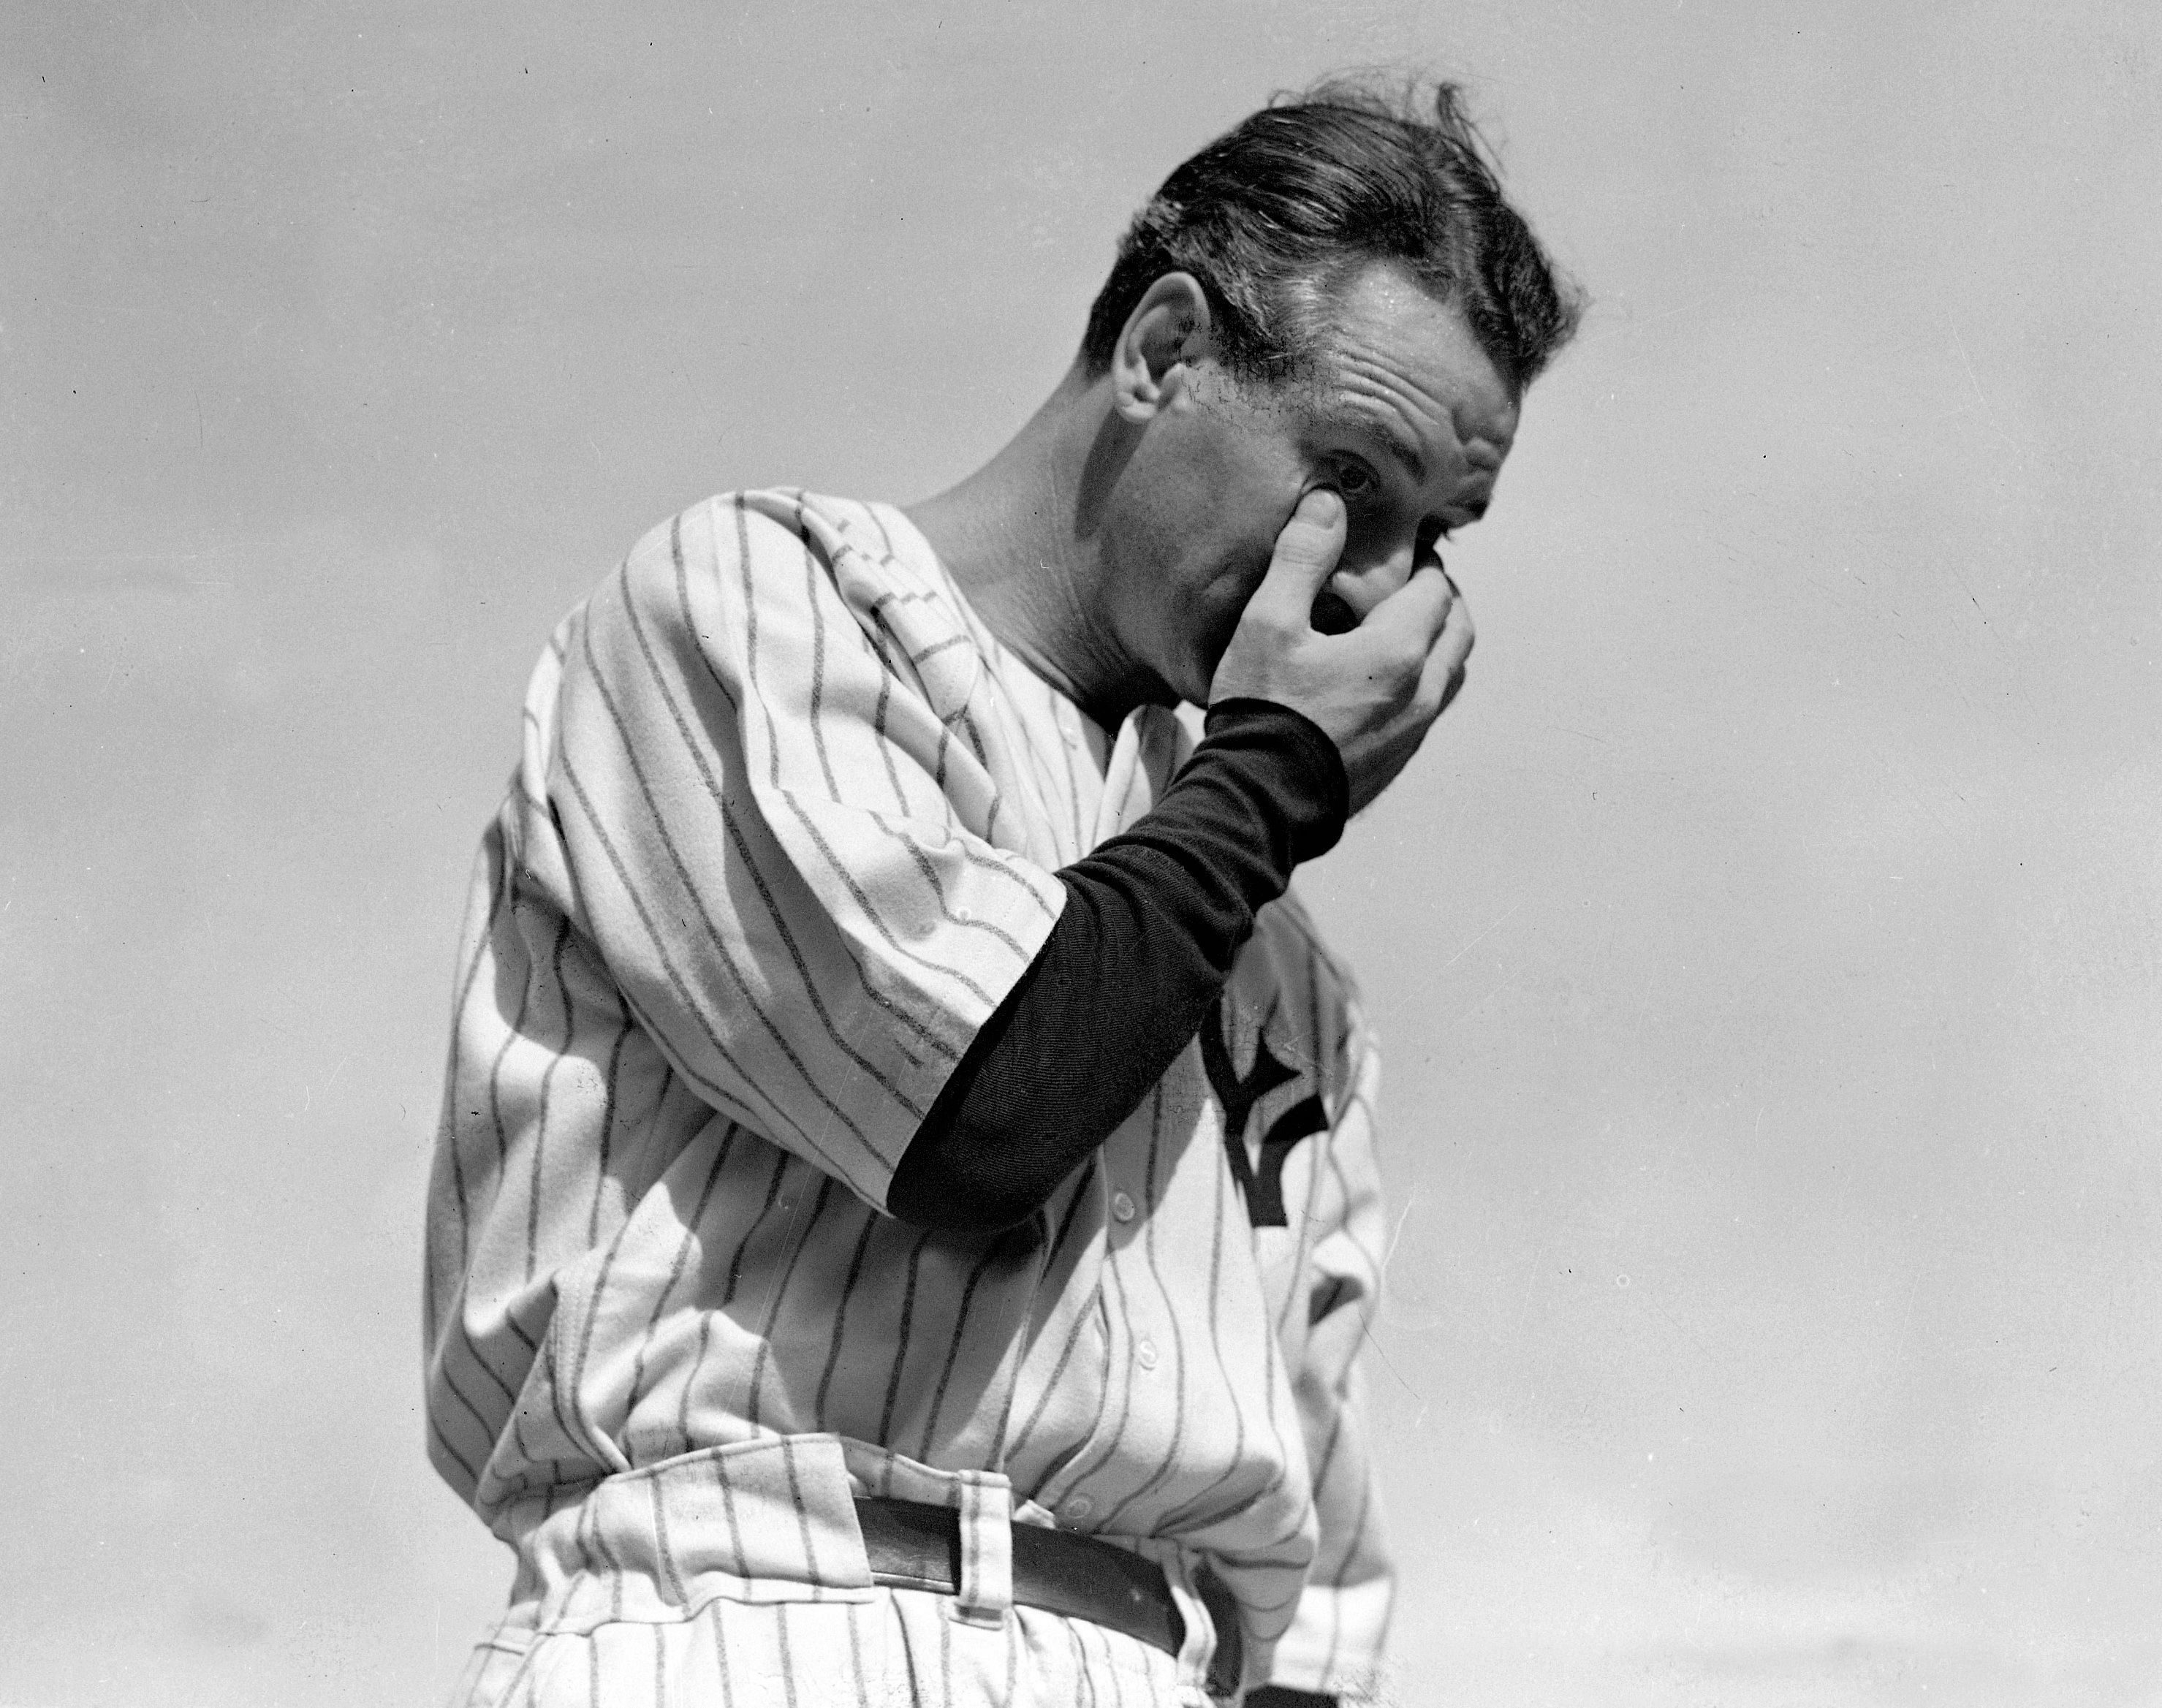 Lou Gehrig wipes away a tear while speaking during a tribute at Yankee Stadium in New York.